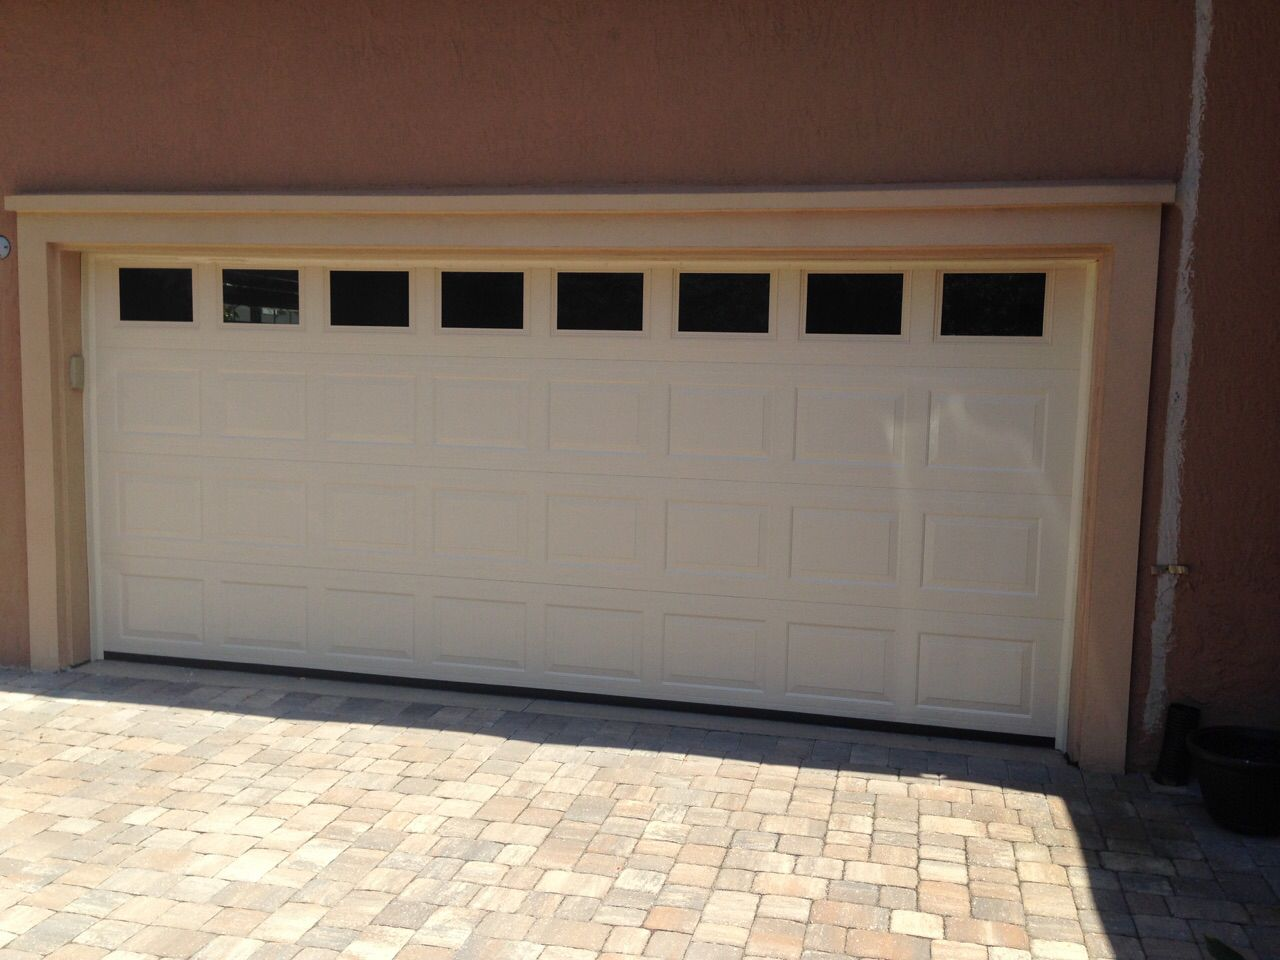 Haas Garage Door 2580 In Almond With Solid Windows